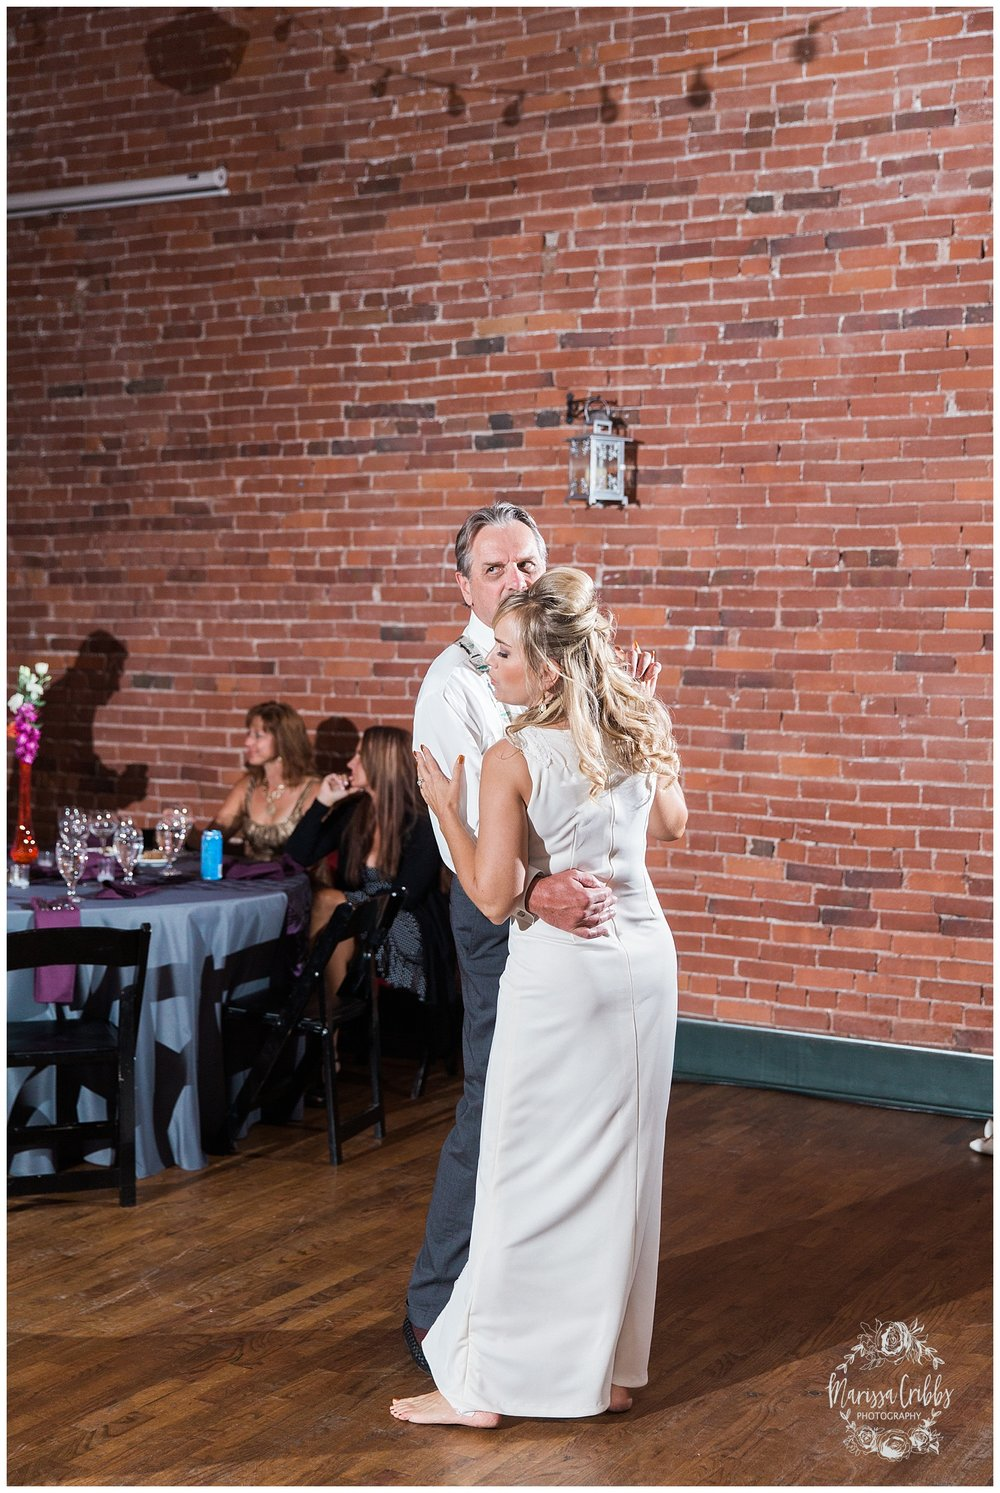 TOWN SQUARE PAOLA WEDDING | BRANDY & TERRY | MARISSA CRIBBS PHOTOGRAPHY_3123.jpg